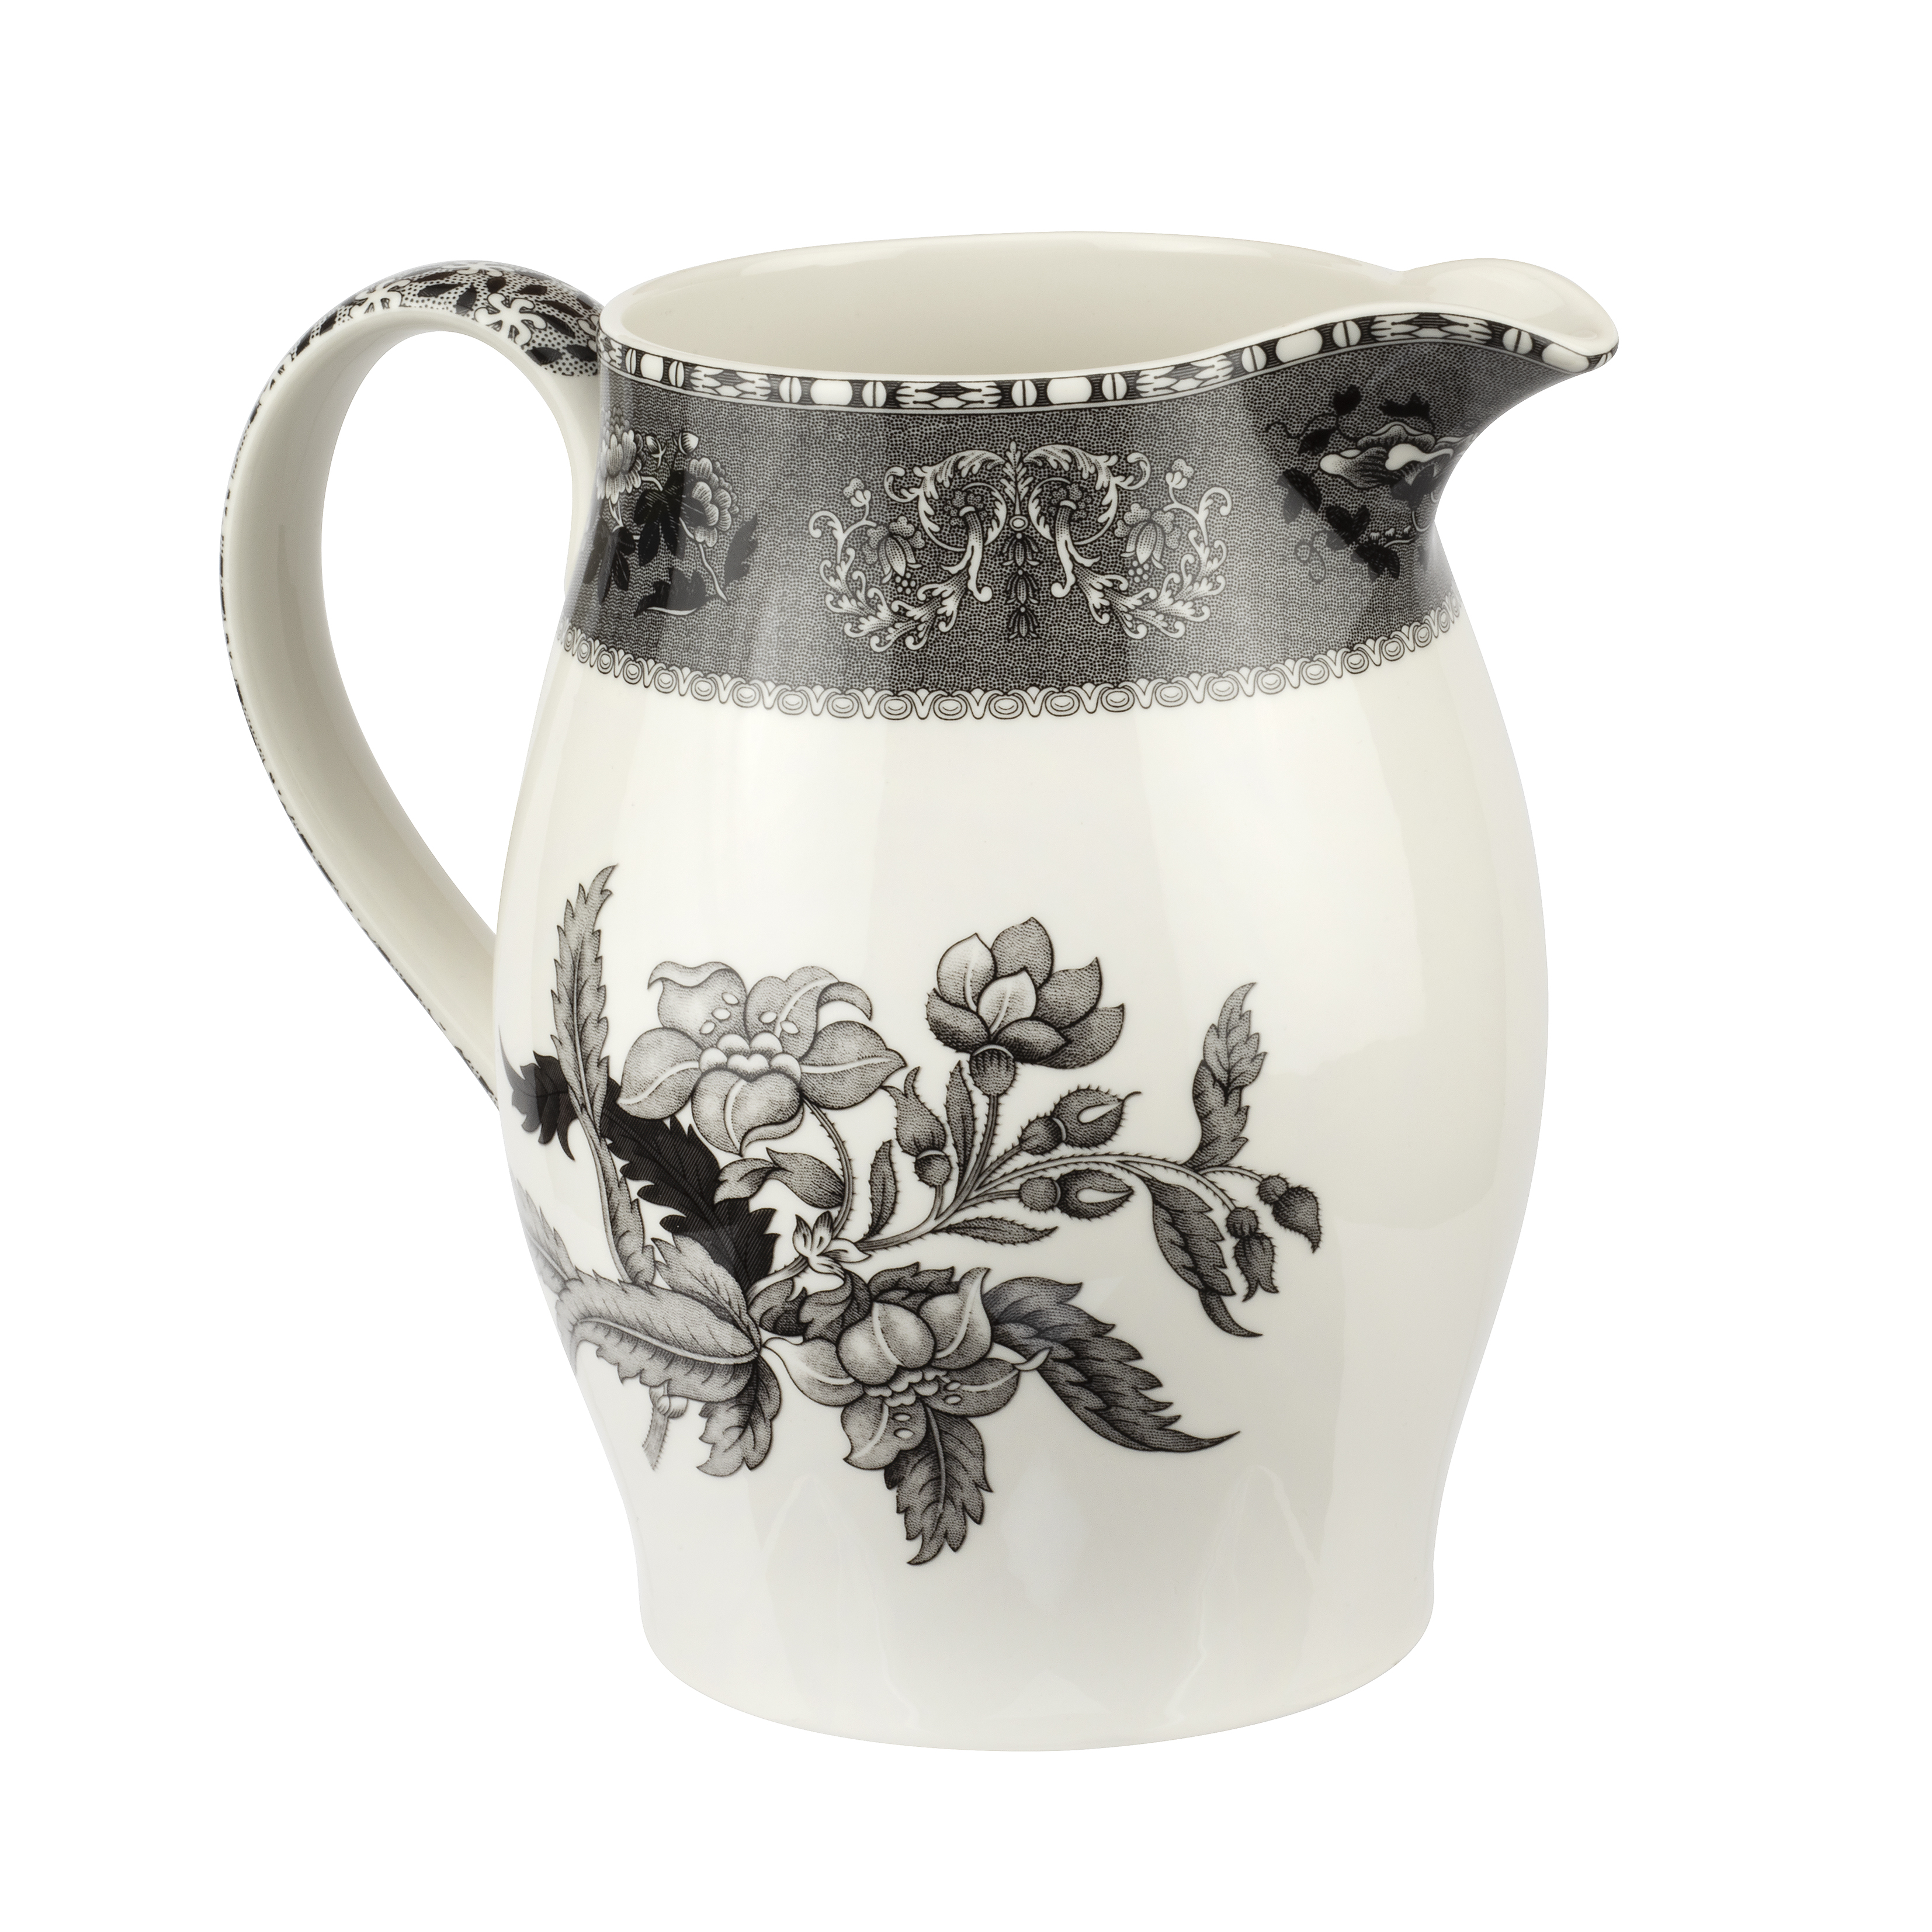 Spode Heritage 3.5 Pint Pitcher (Camilla) image number 2